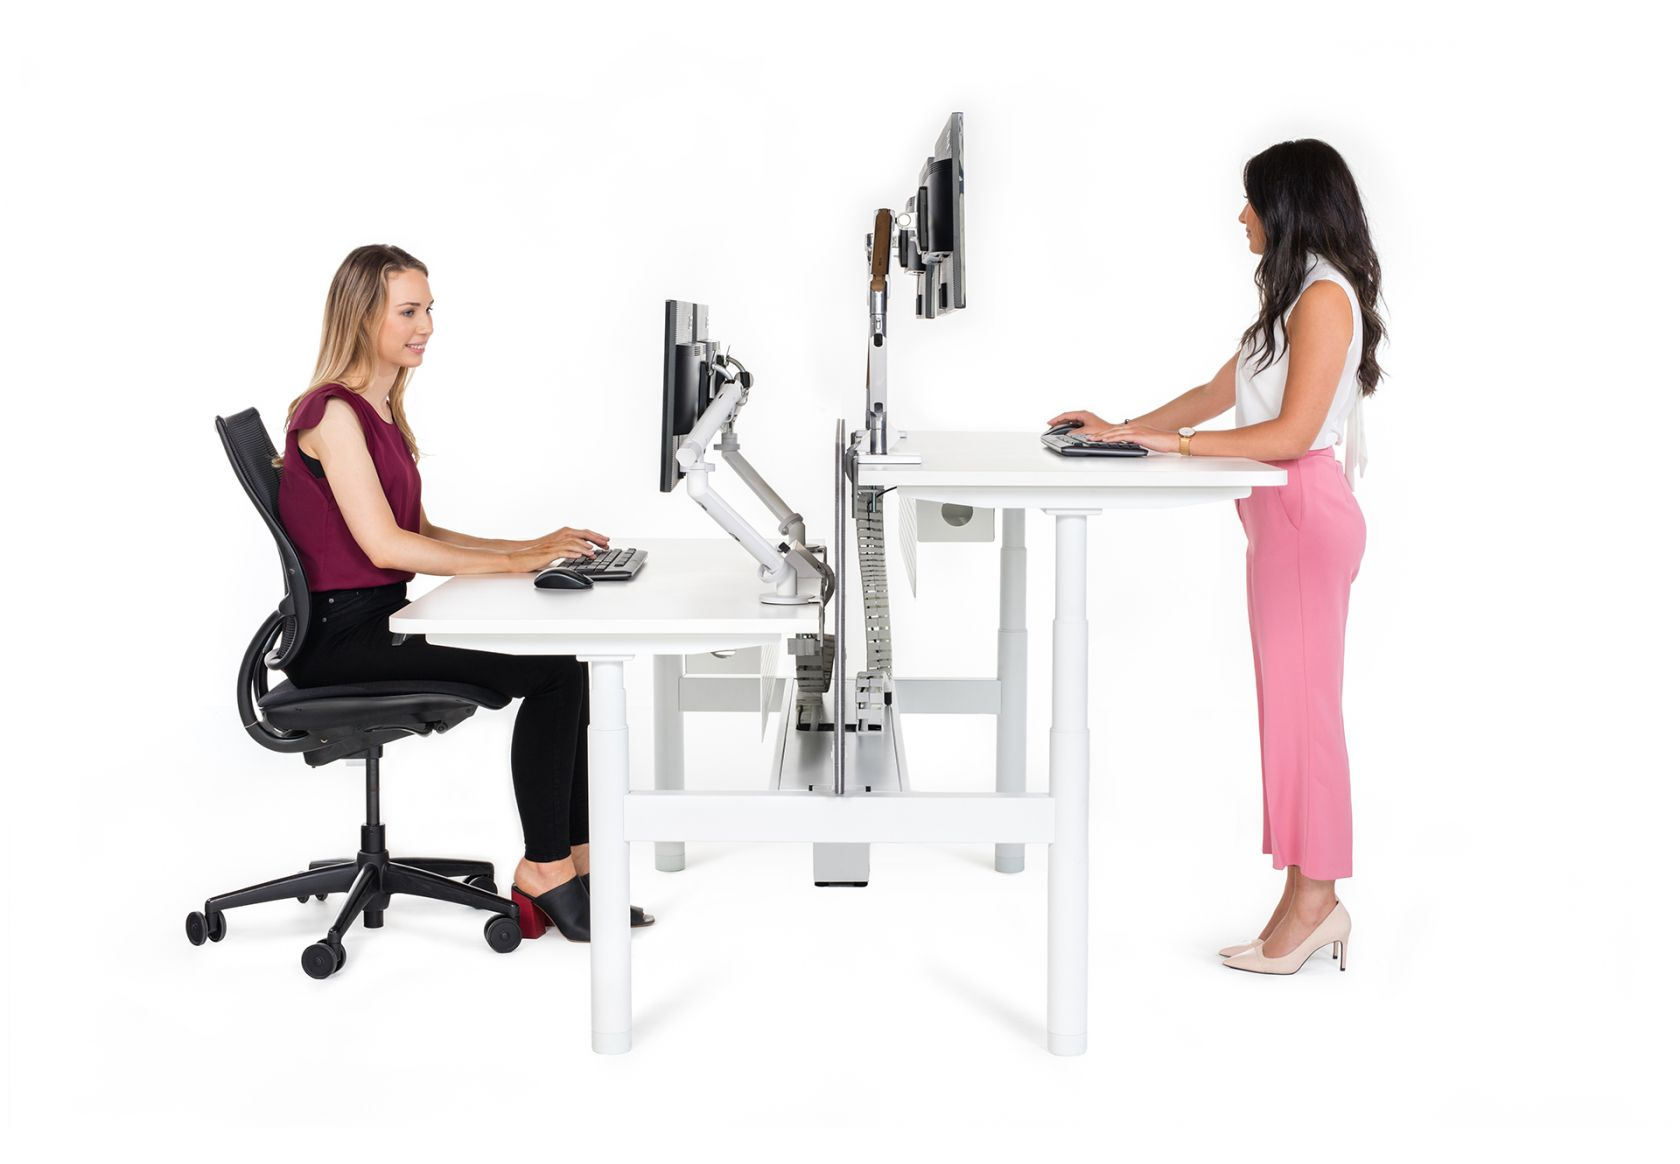 Neo Workstation and Liberty Mesh Chair